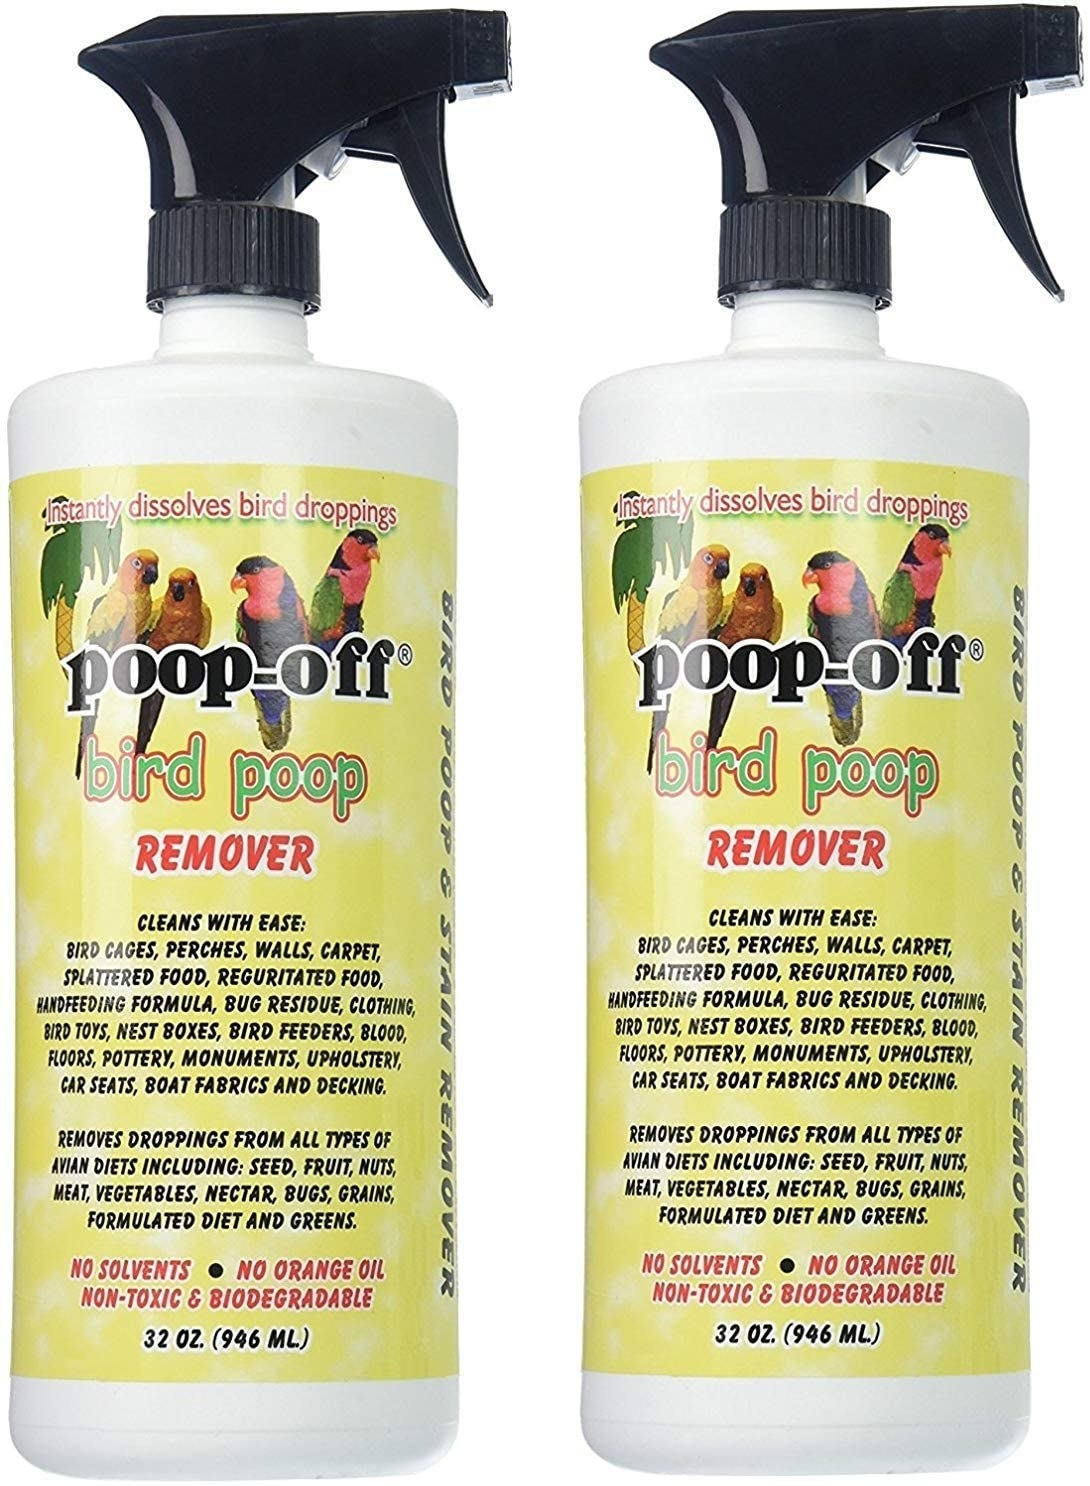 The bird dropping remover